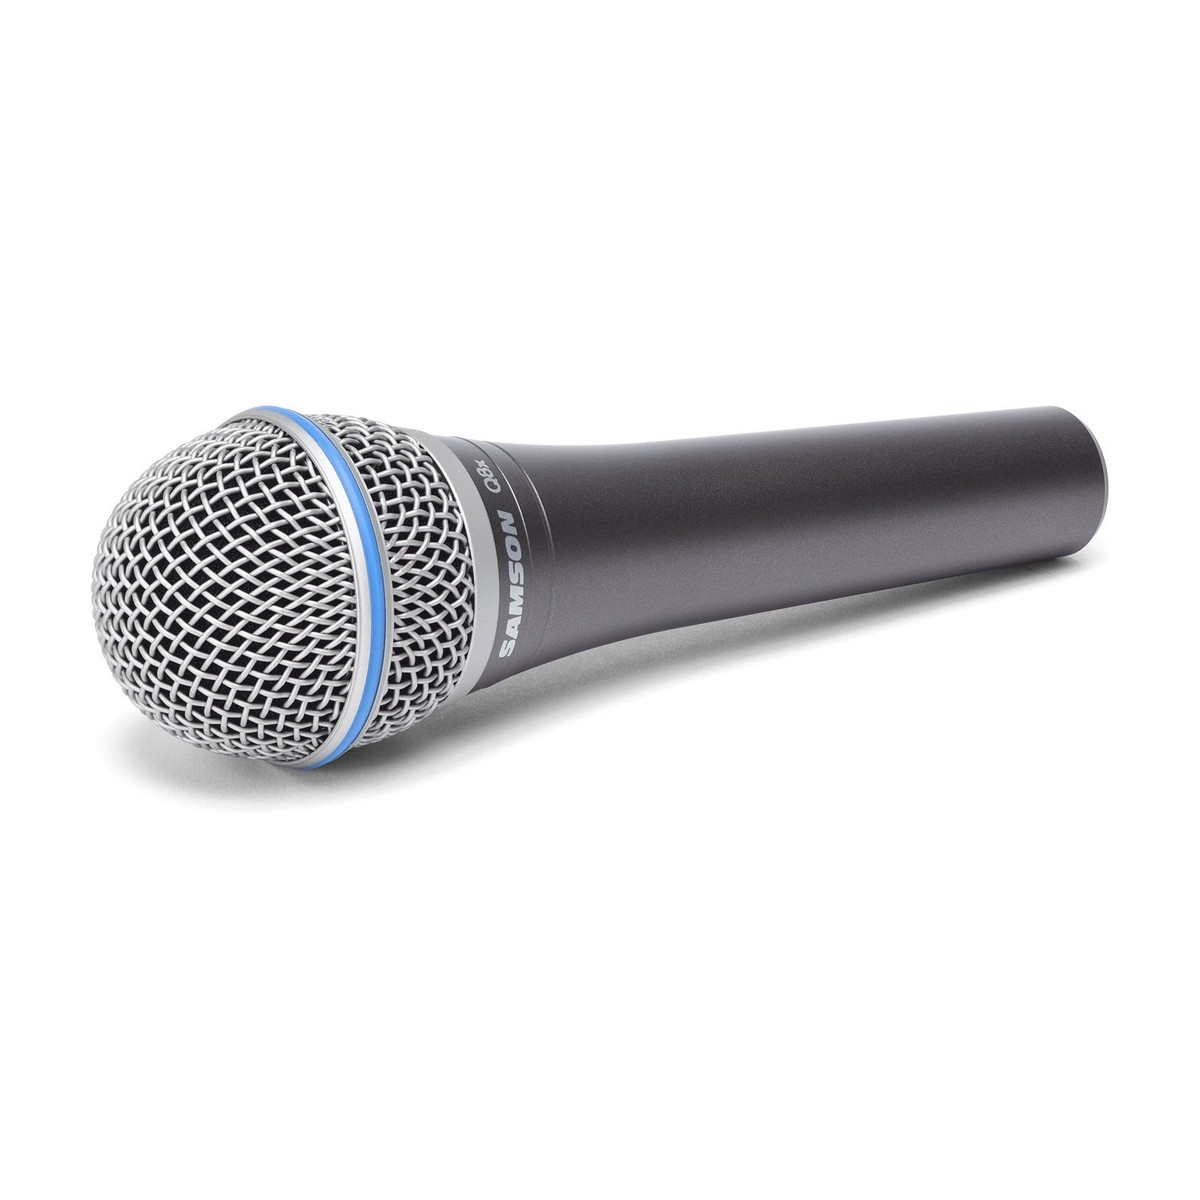 samson q8x professional dynamic vocal microphone at gear4music. Black Bedroom Furniture Sets. Home Design Ideas